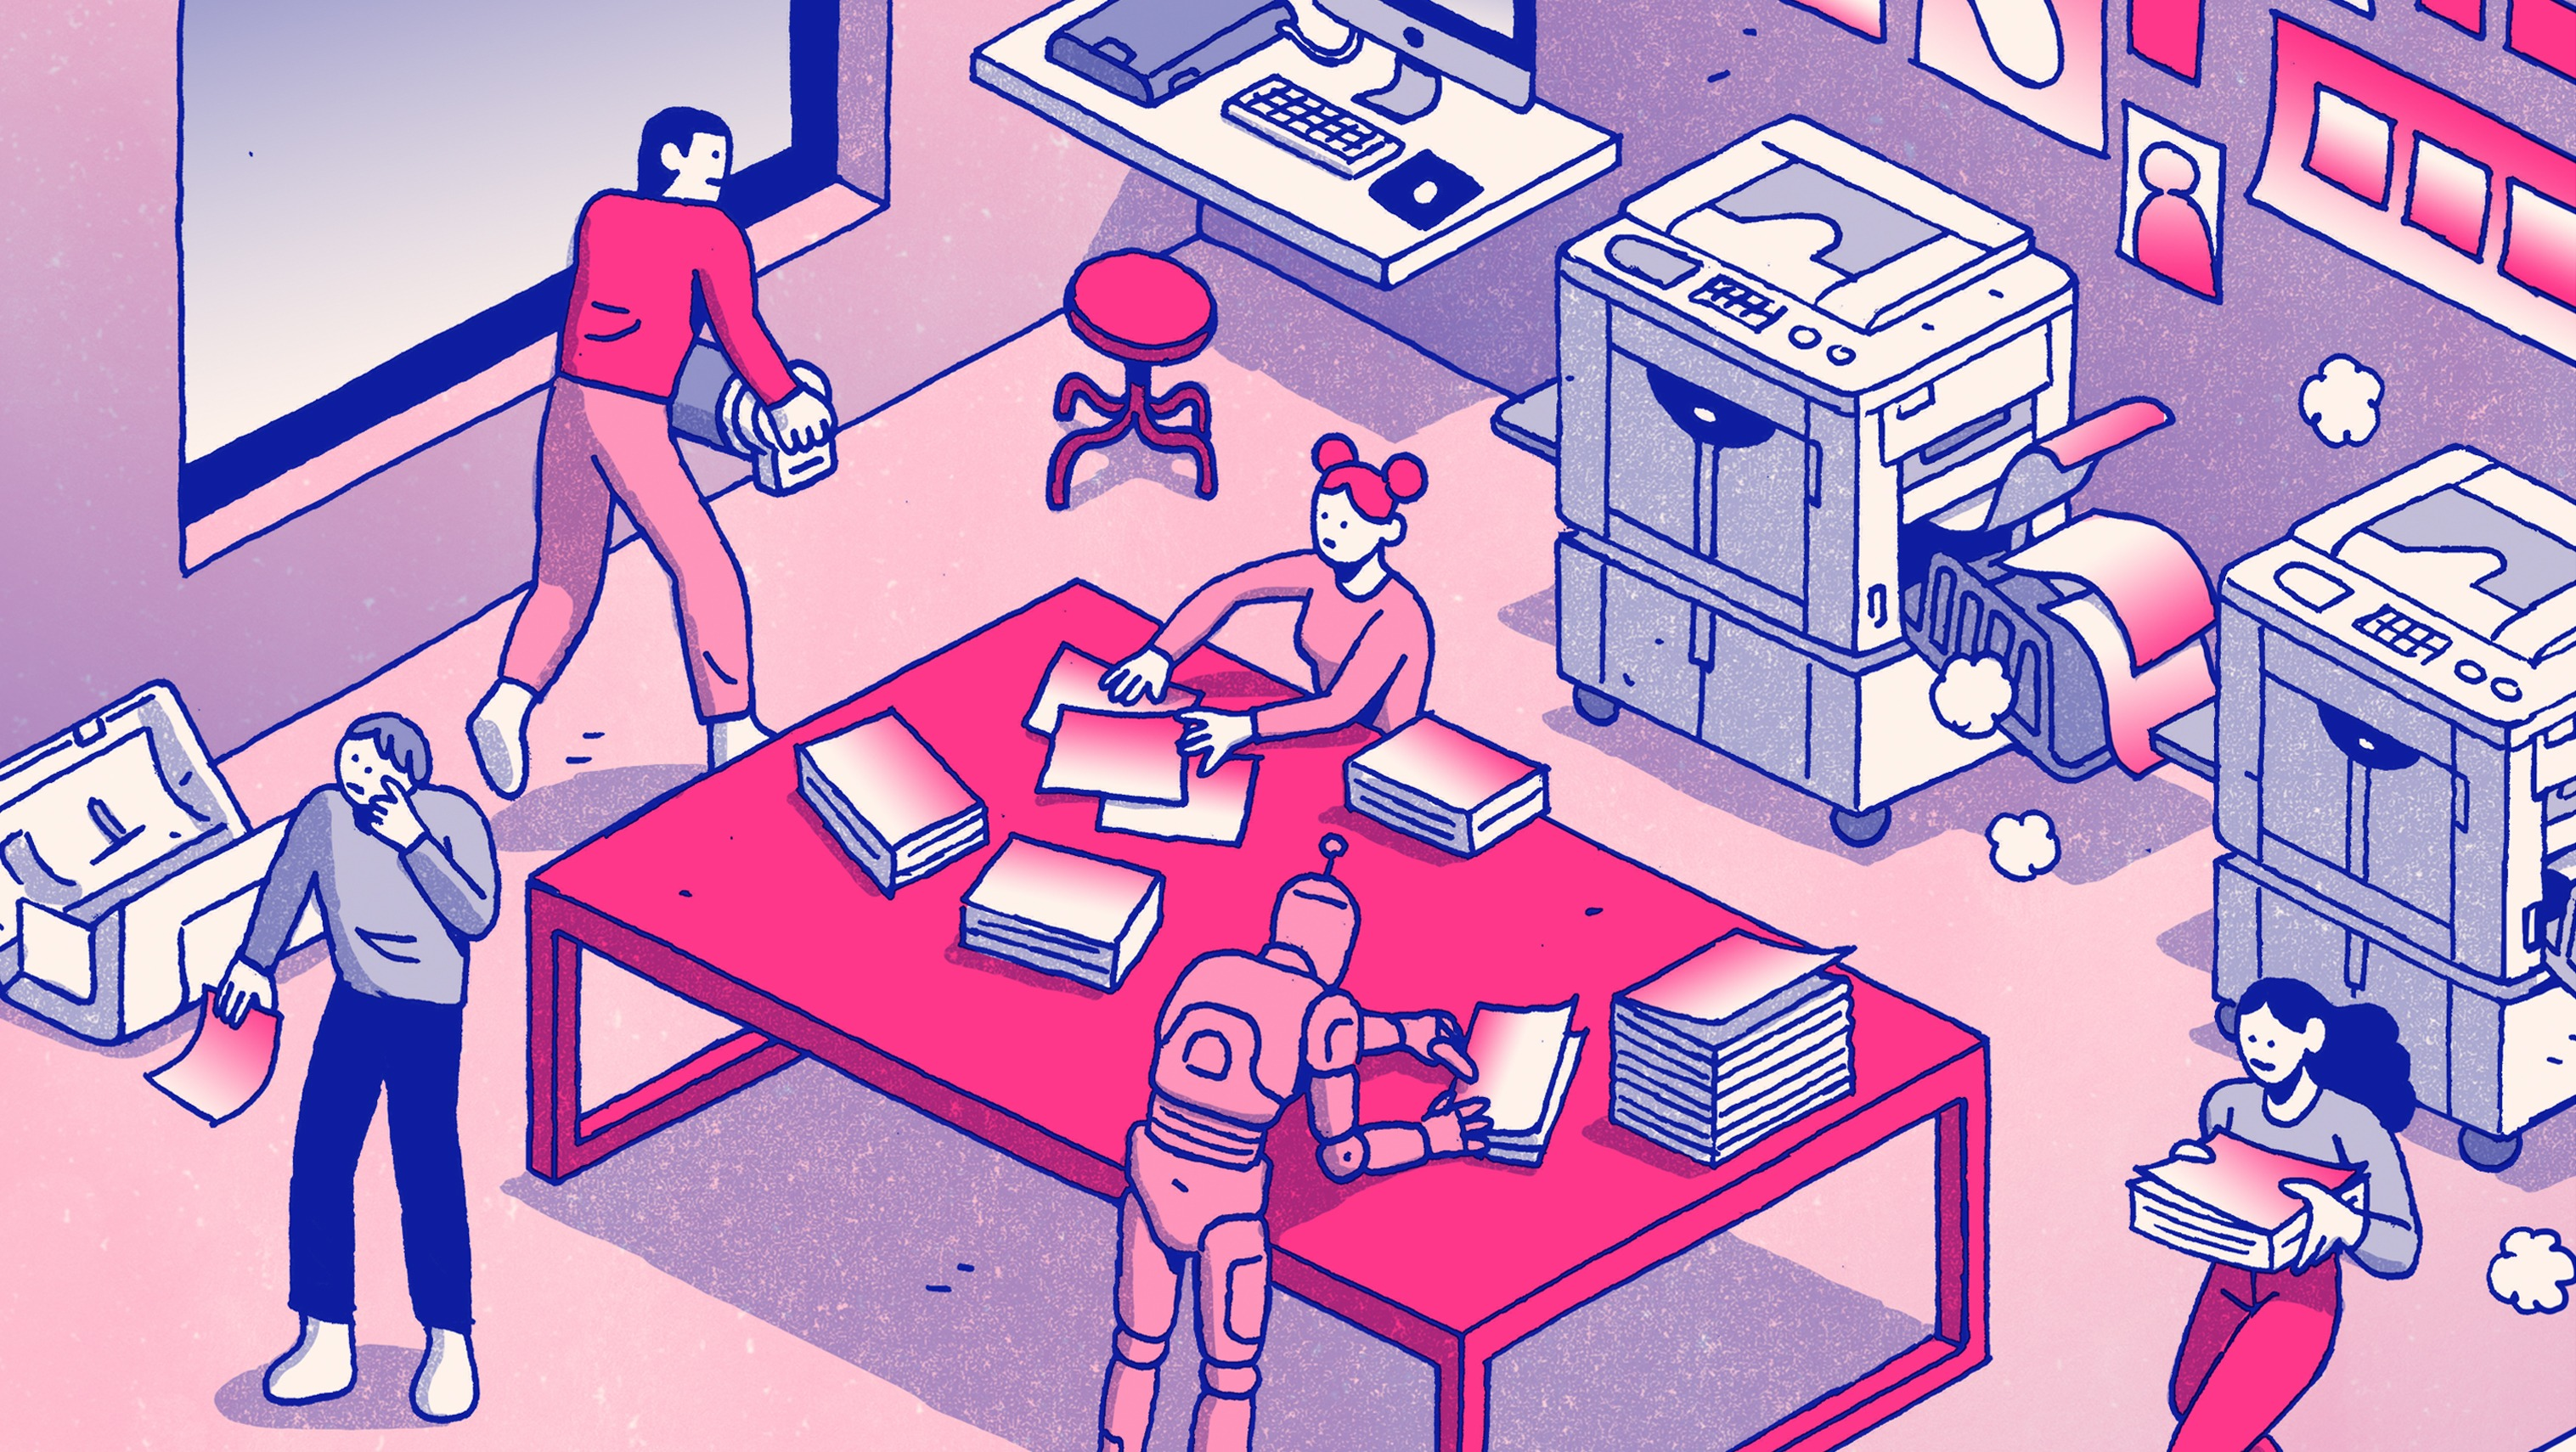 illustration of people working in a printing studio.  Images is in hues of pink and blue.